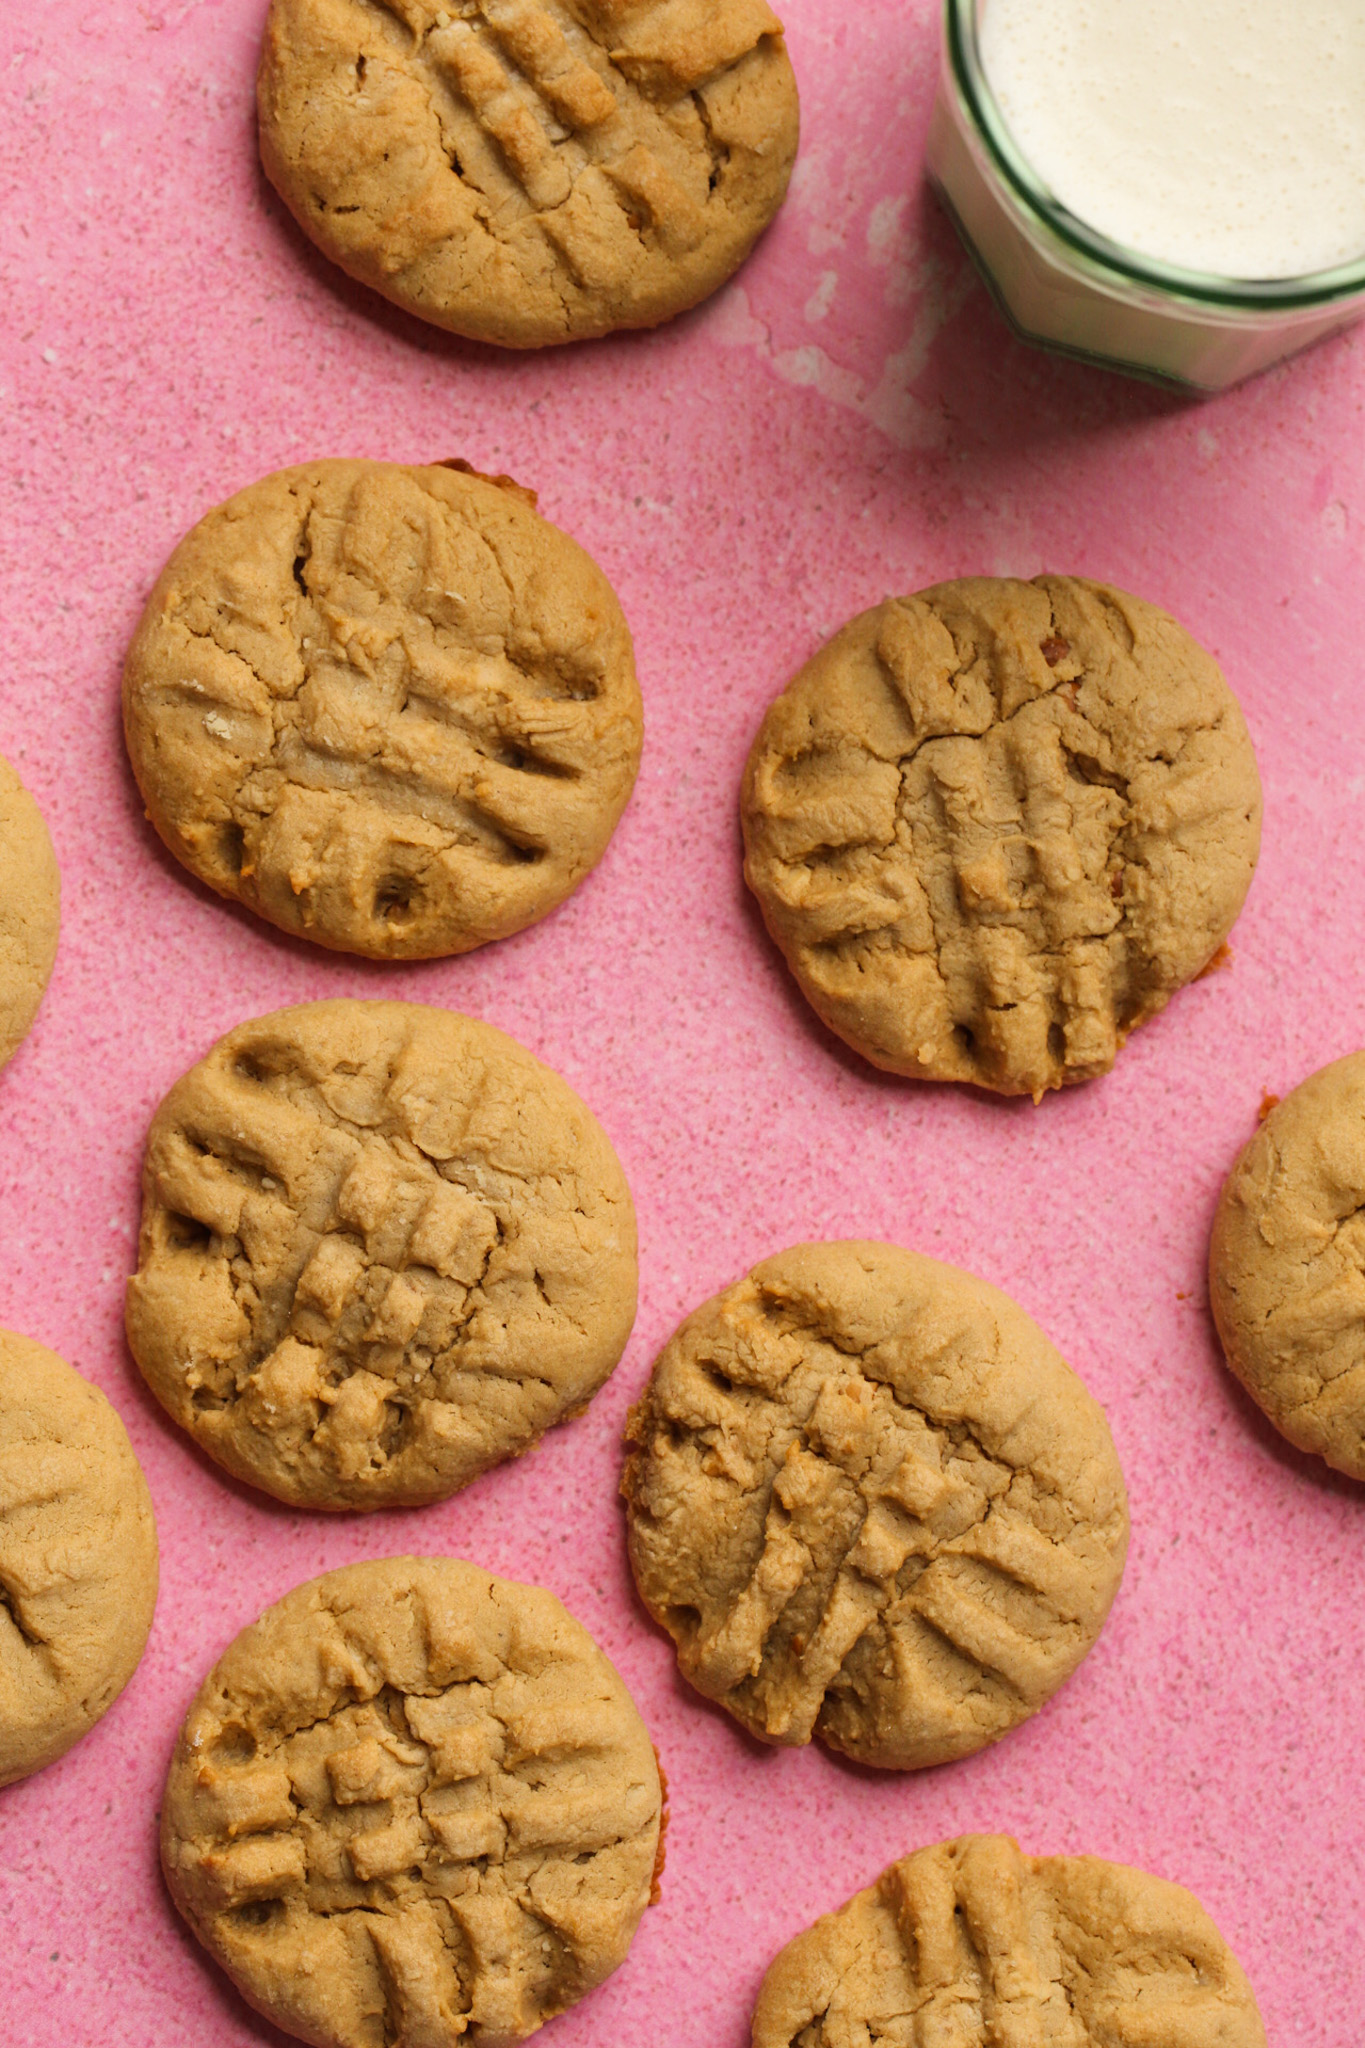 close up of peanut butter cookies on pink background